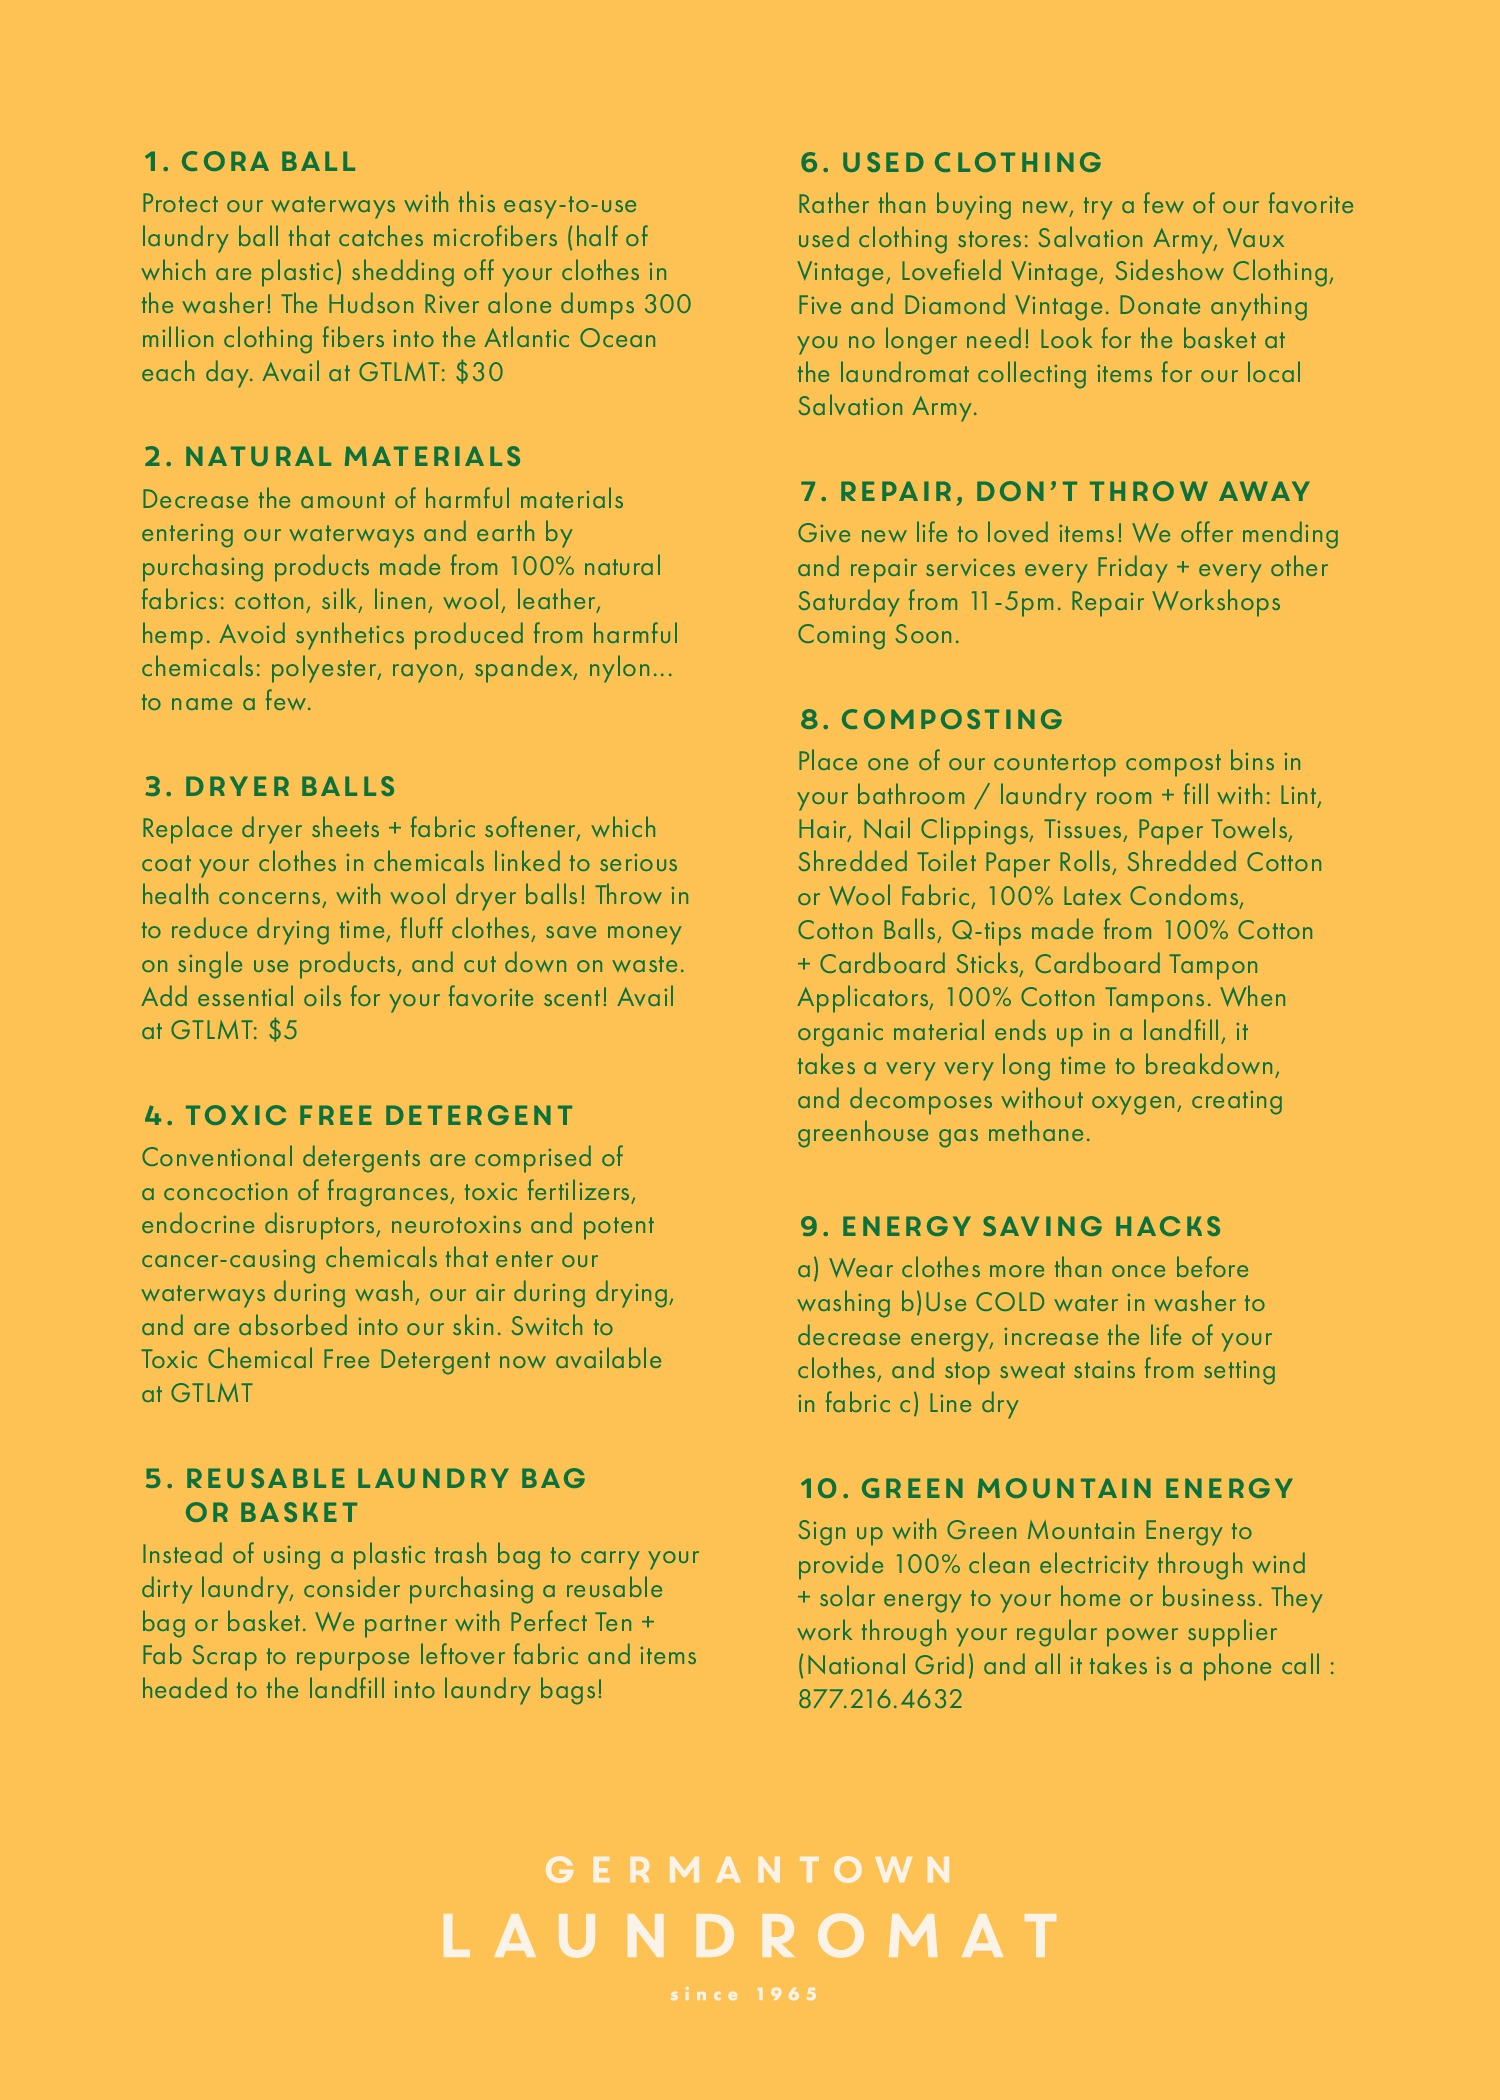 Germantown Laundromat Launch Party Card_V2-page-1.jpg